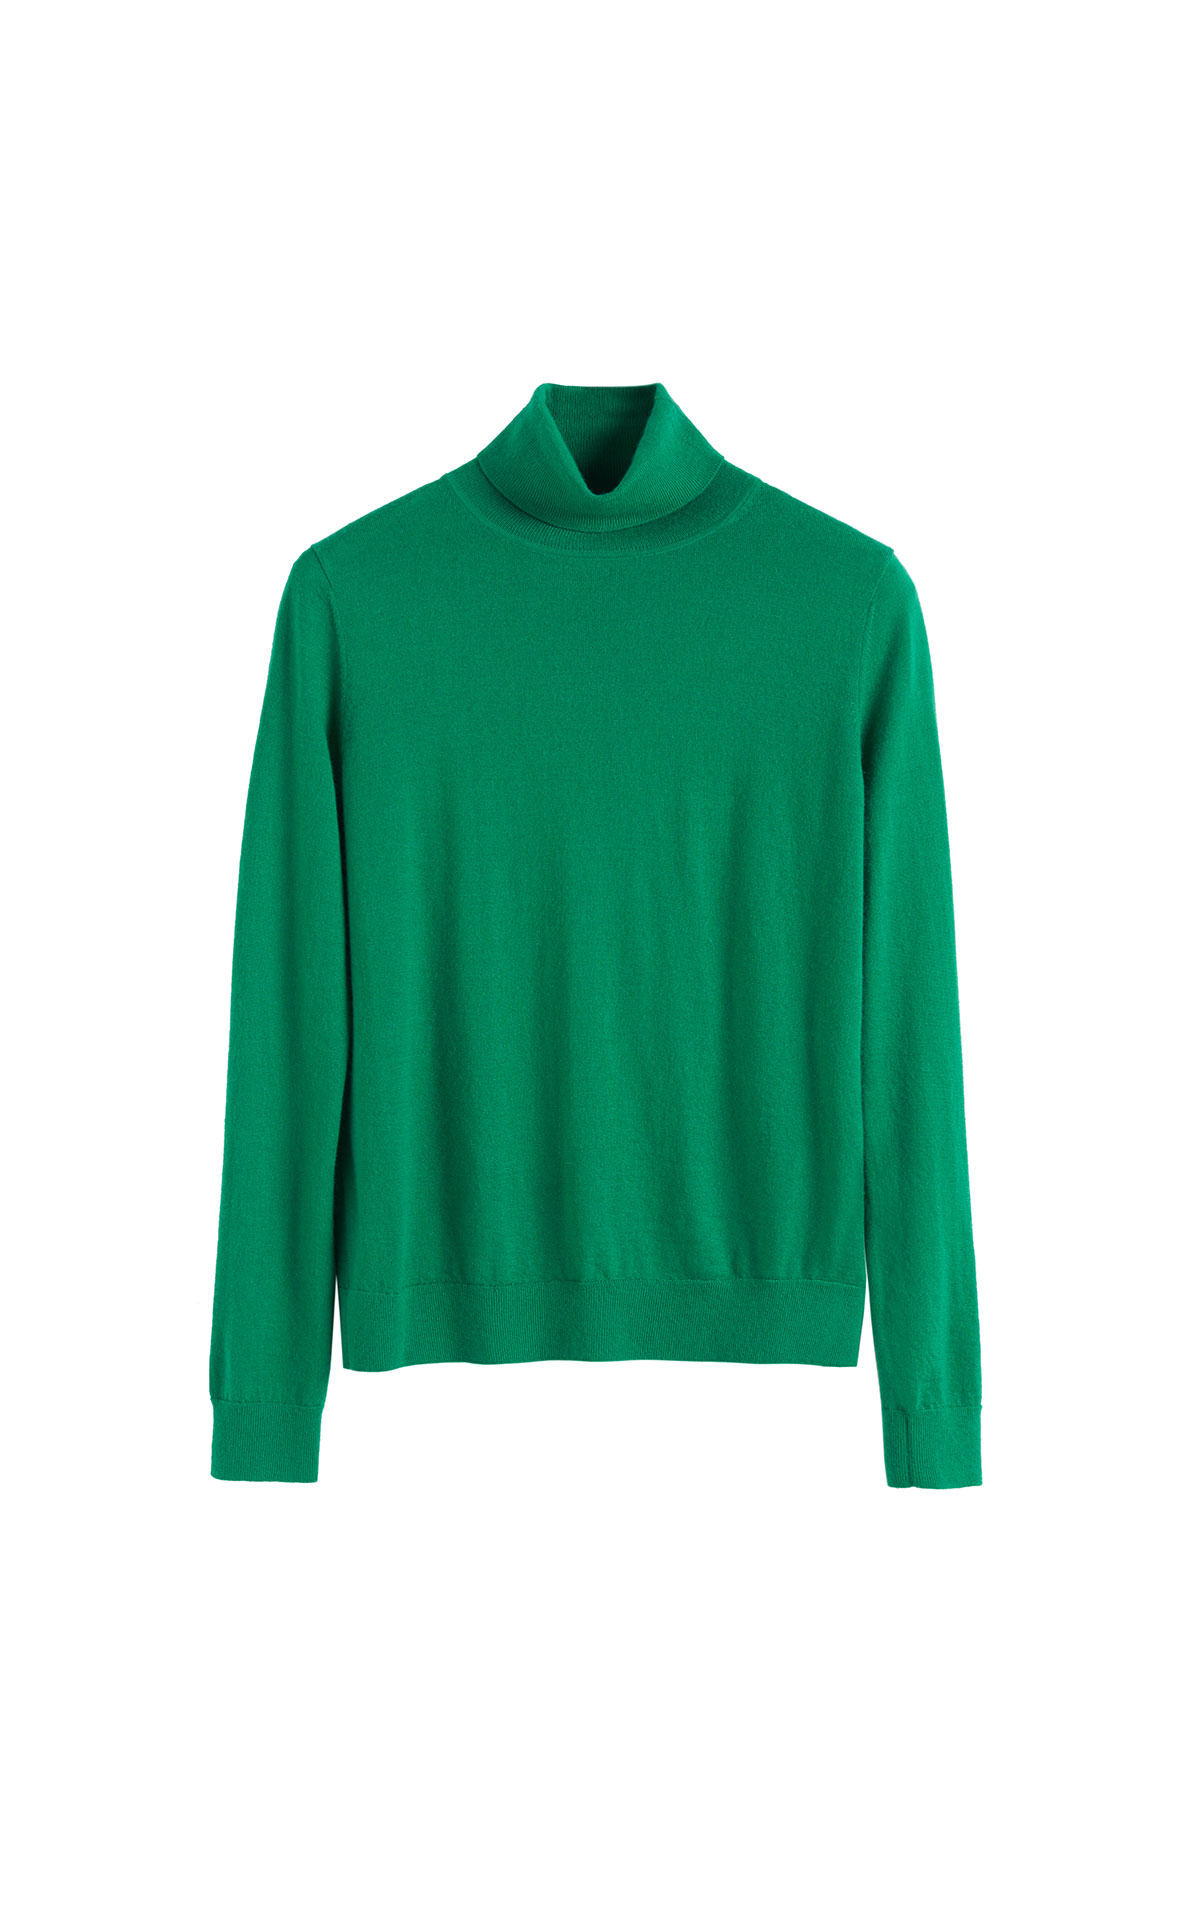 Chinti & Parker Colour pop roll neck sweater from Bicester Village